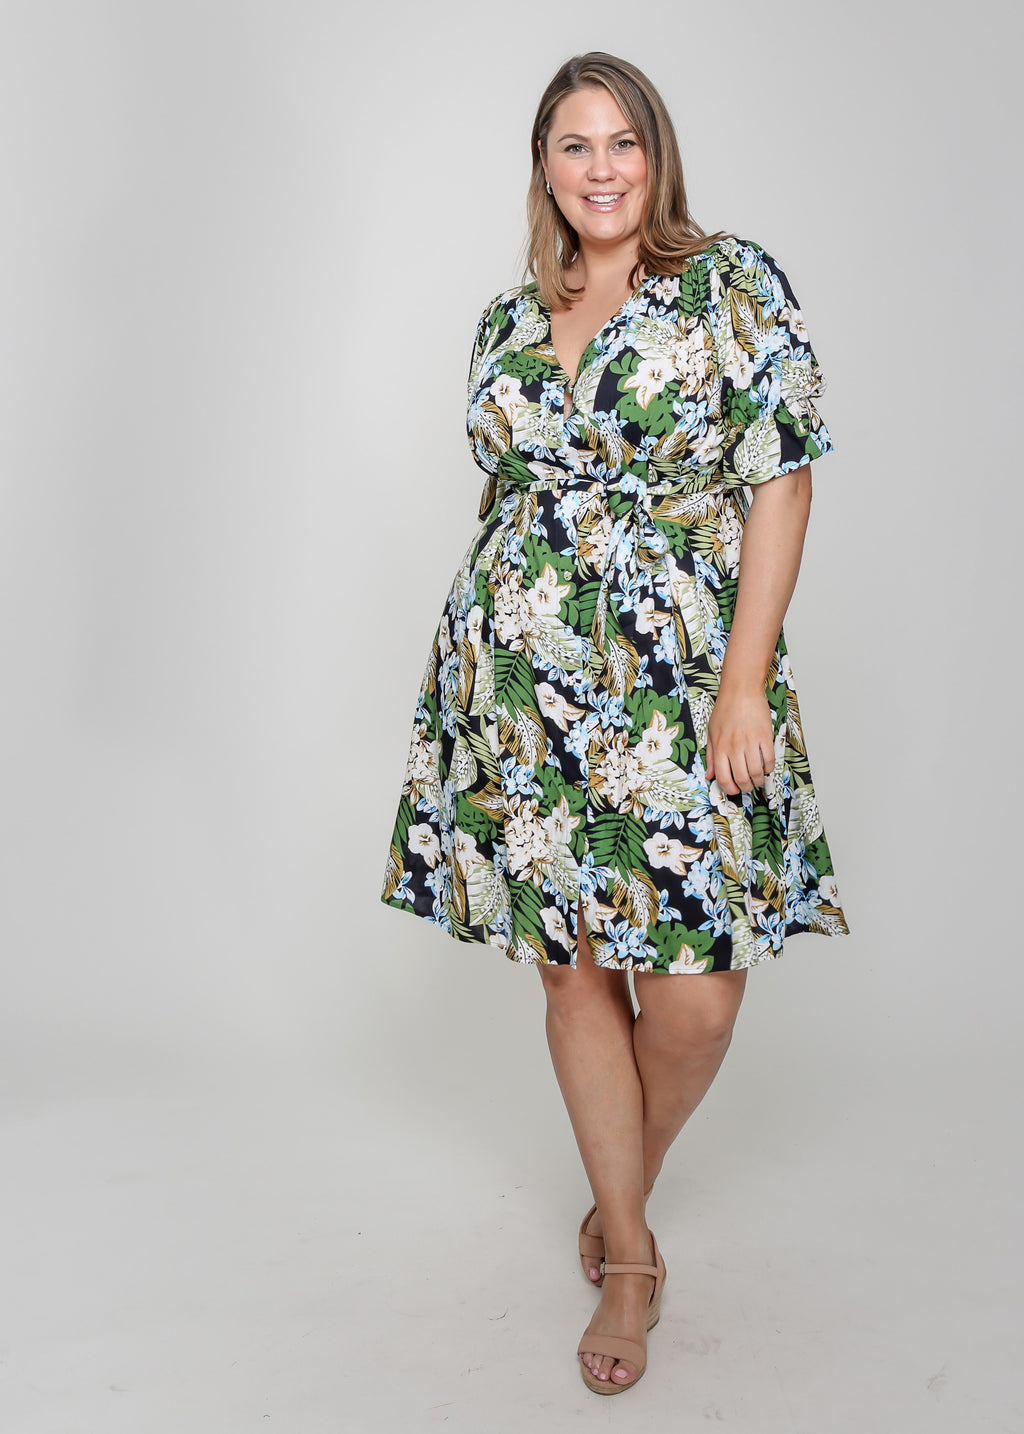 PREA DRESS - GREEN PRINT